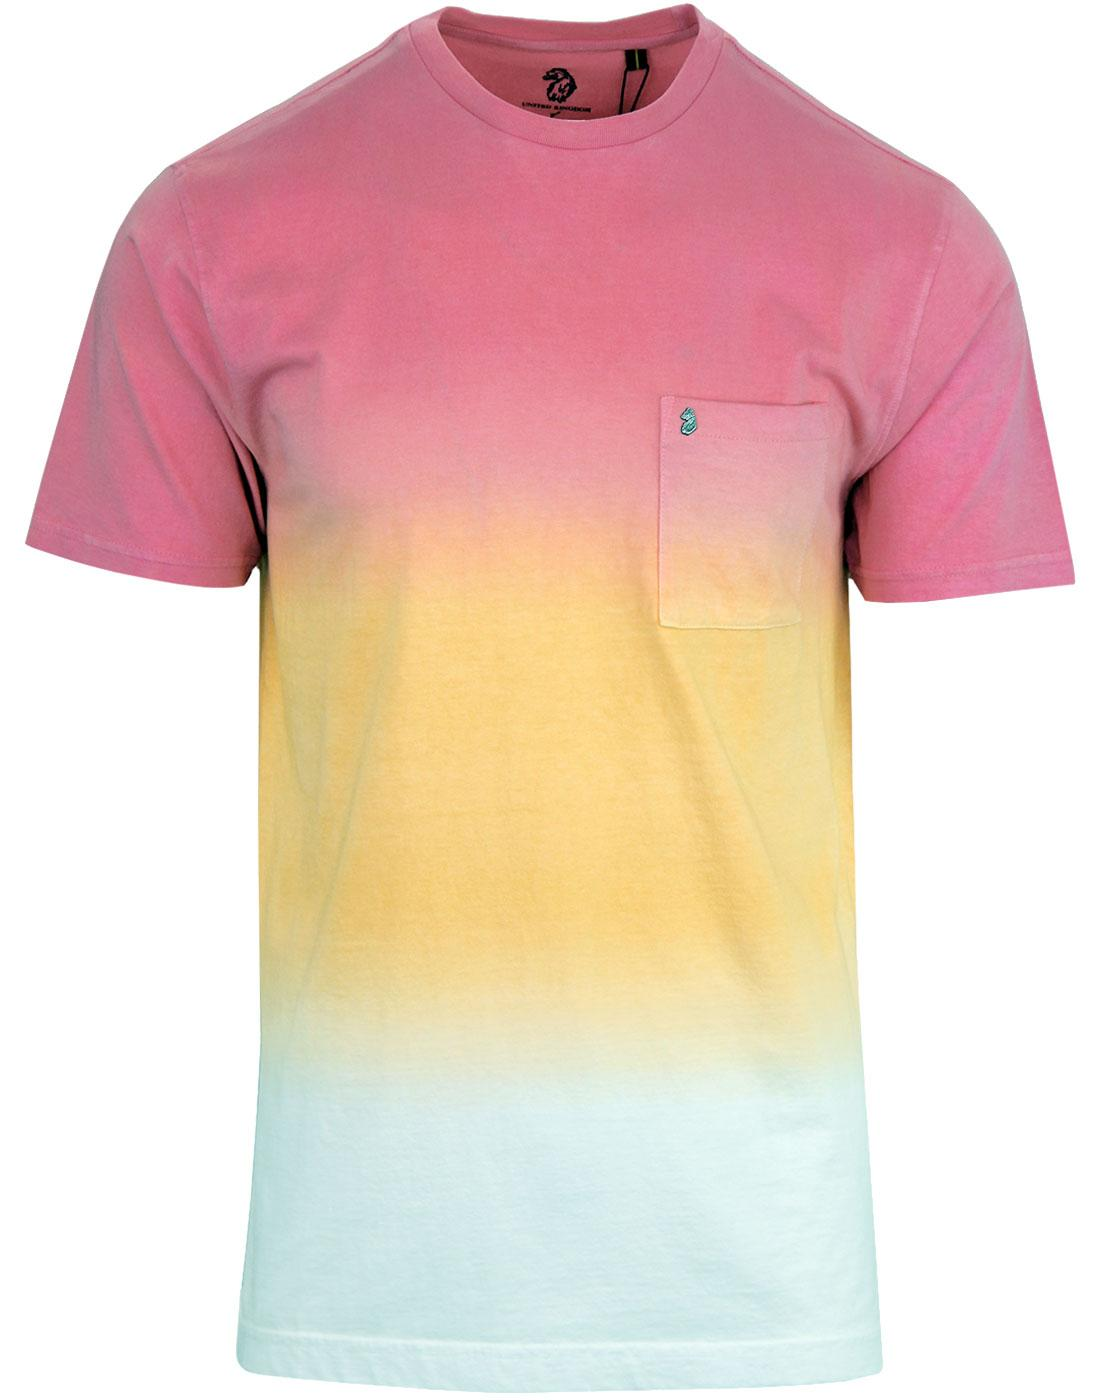 Half Soaked LUKE Men's Retro Indie Tie Dye Tee (F)